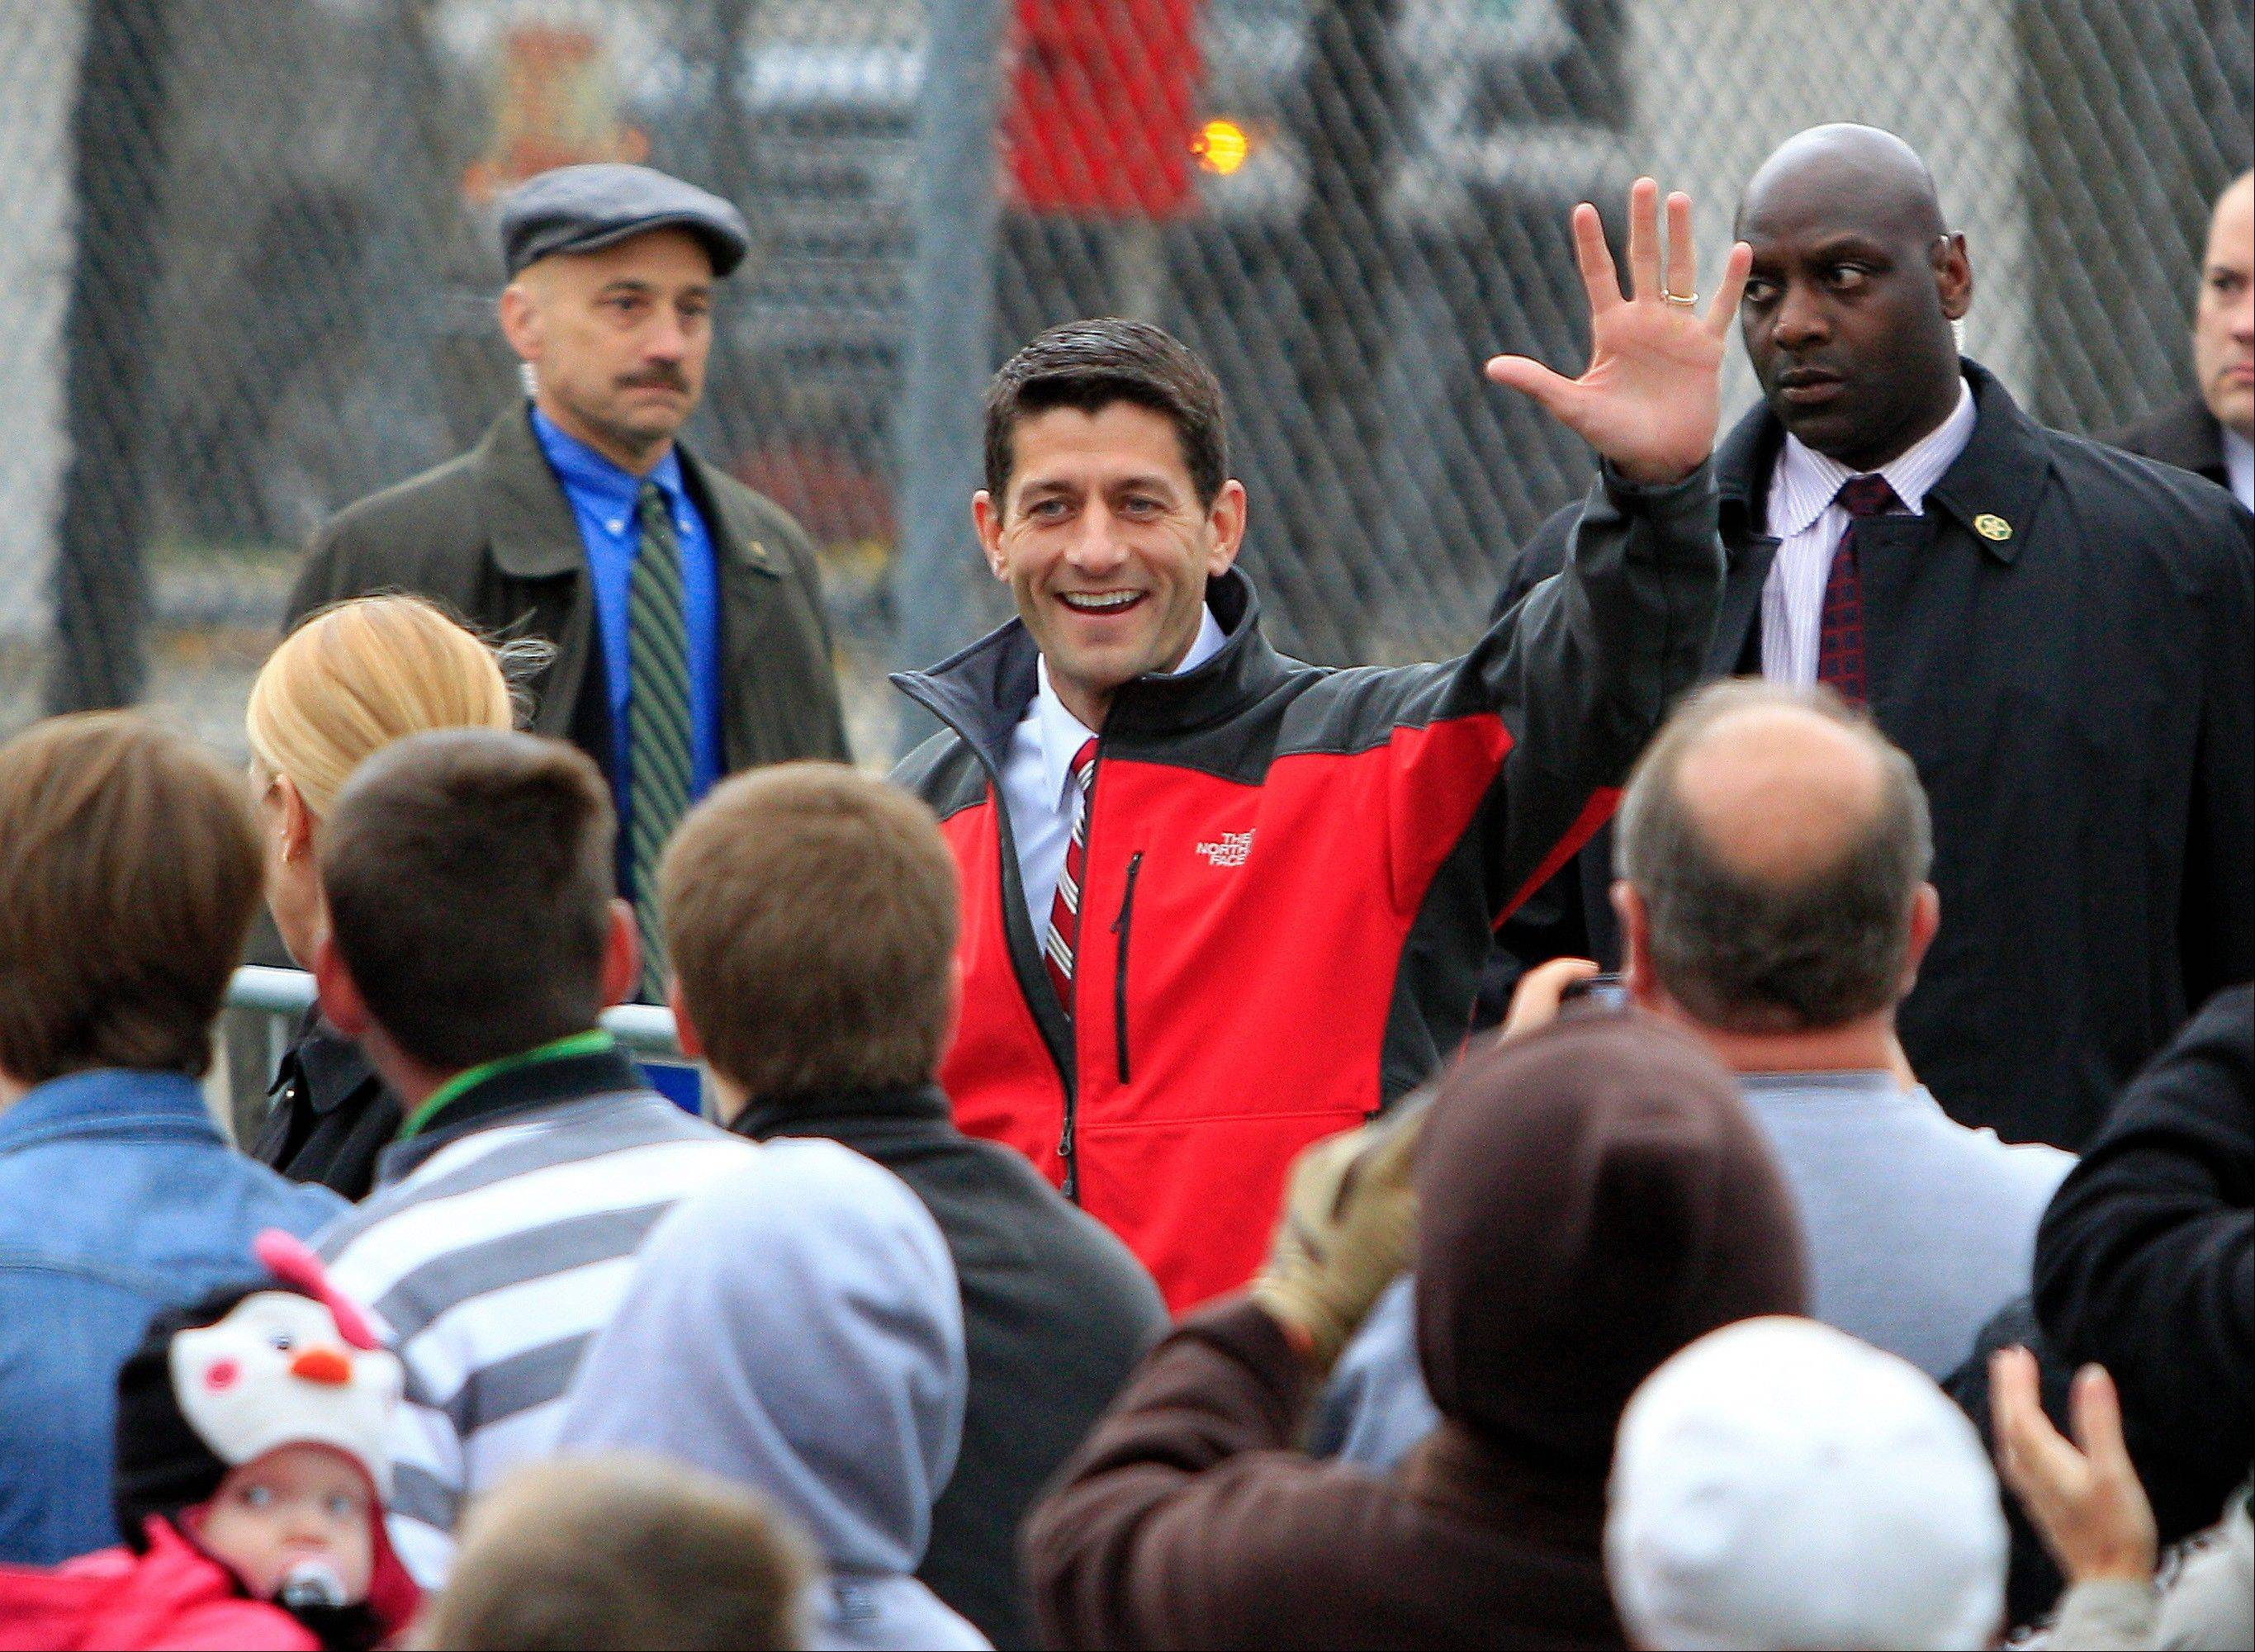 Republican vice presidential candidate, Wisconsin Rep. Paul Ryan, greets supporters before speaking at a campaign stop at Young's Dairy Saturday in Yellow Springs, Ohio.